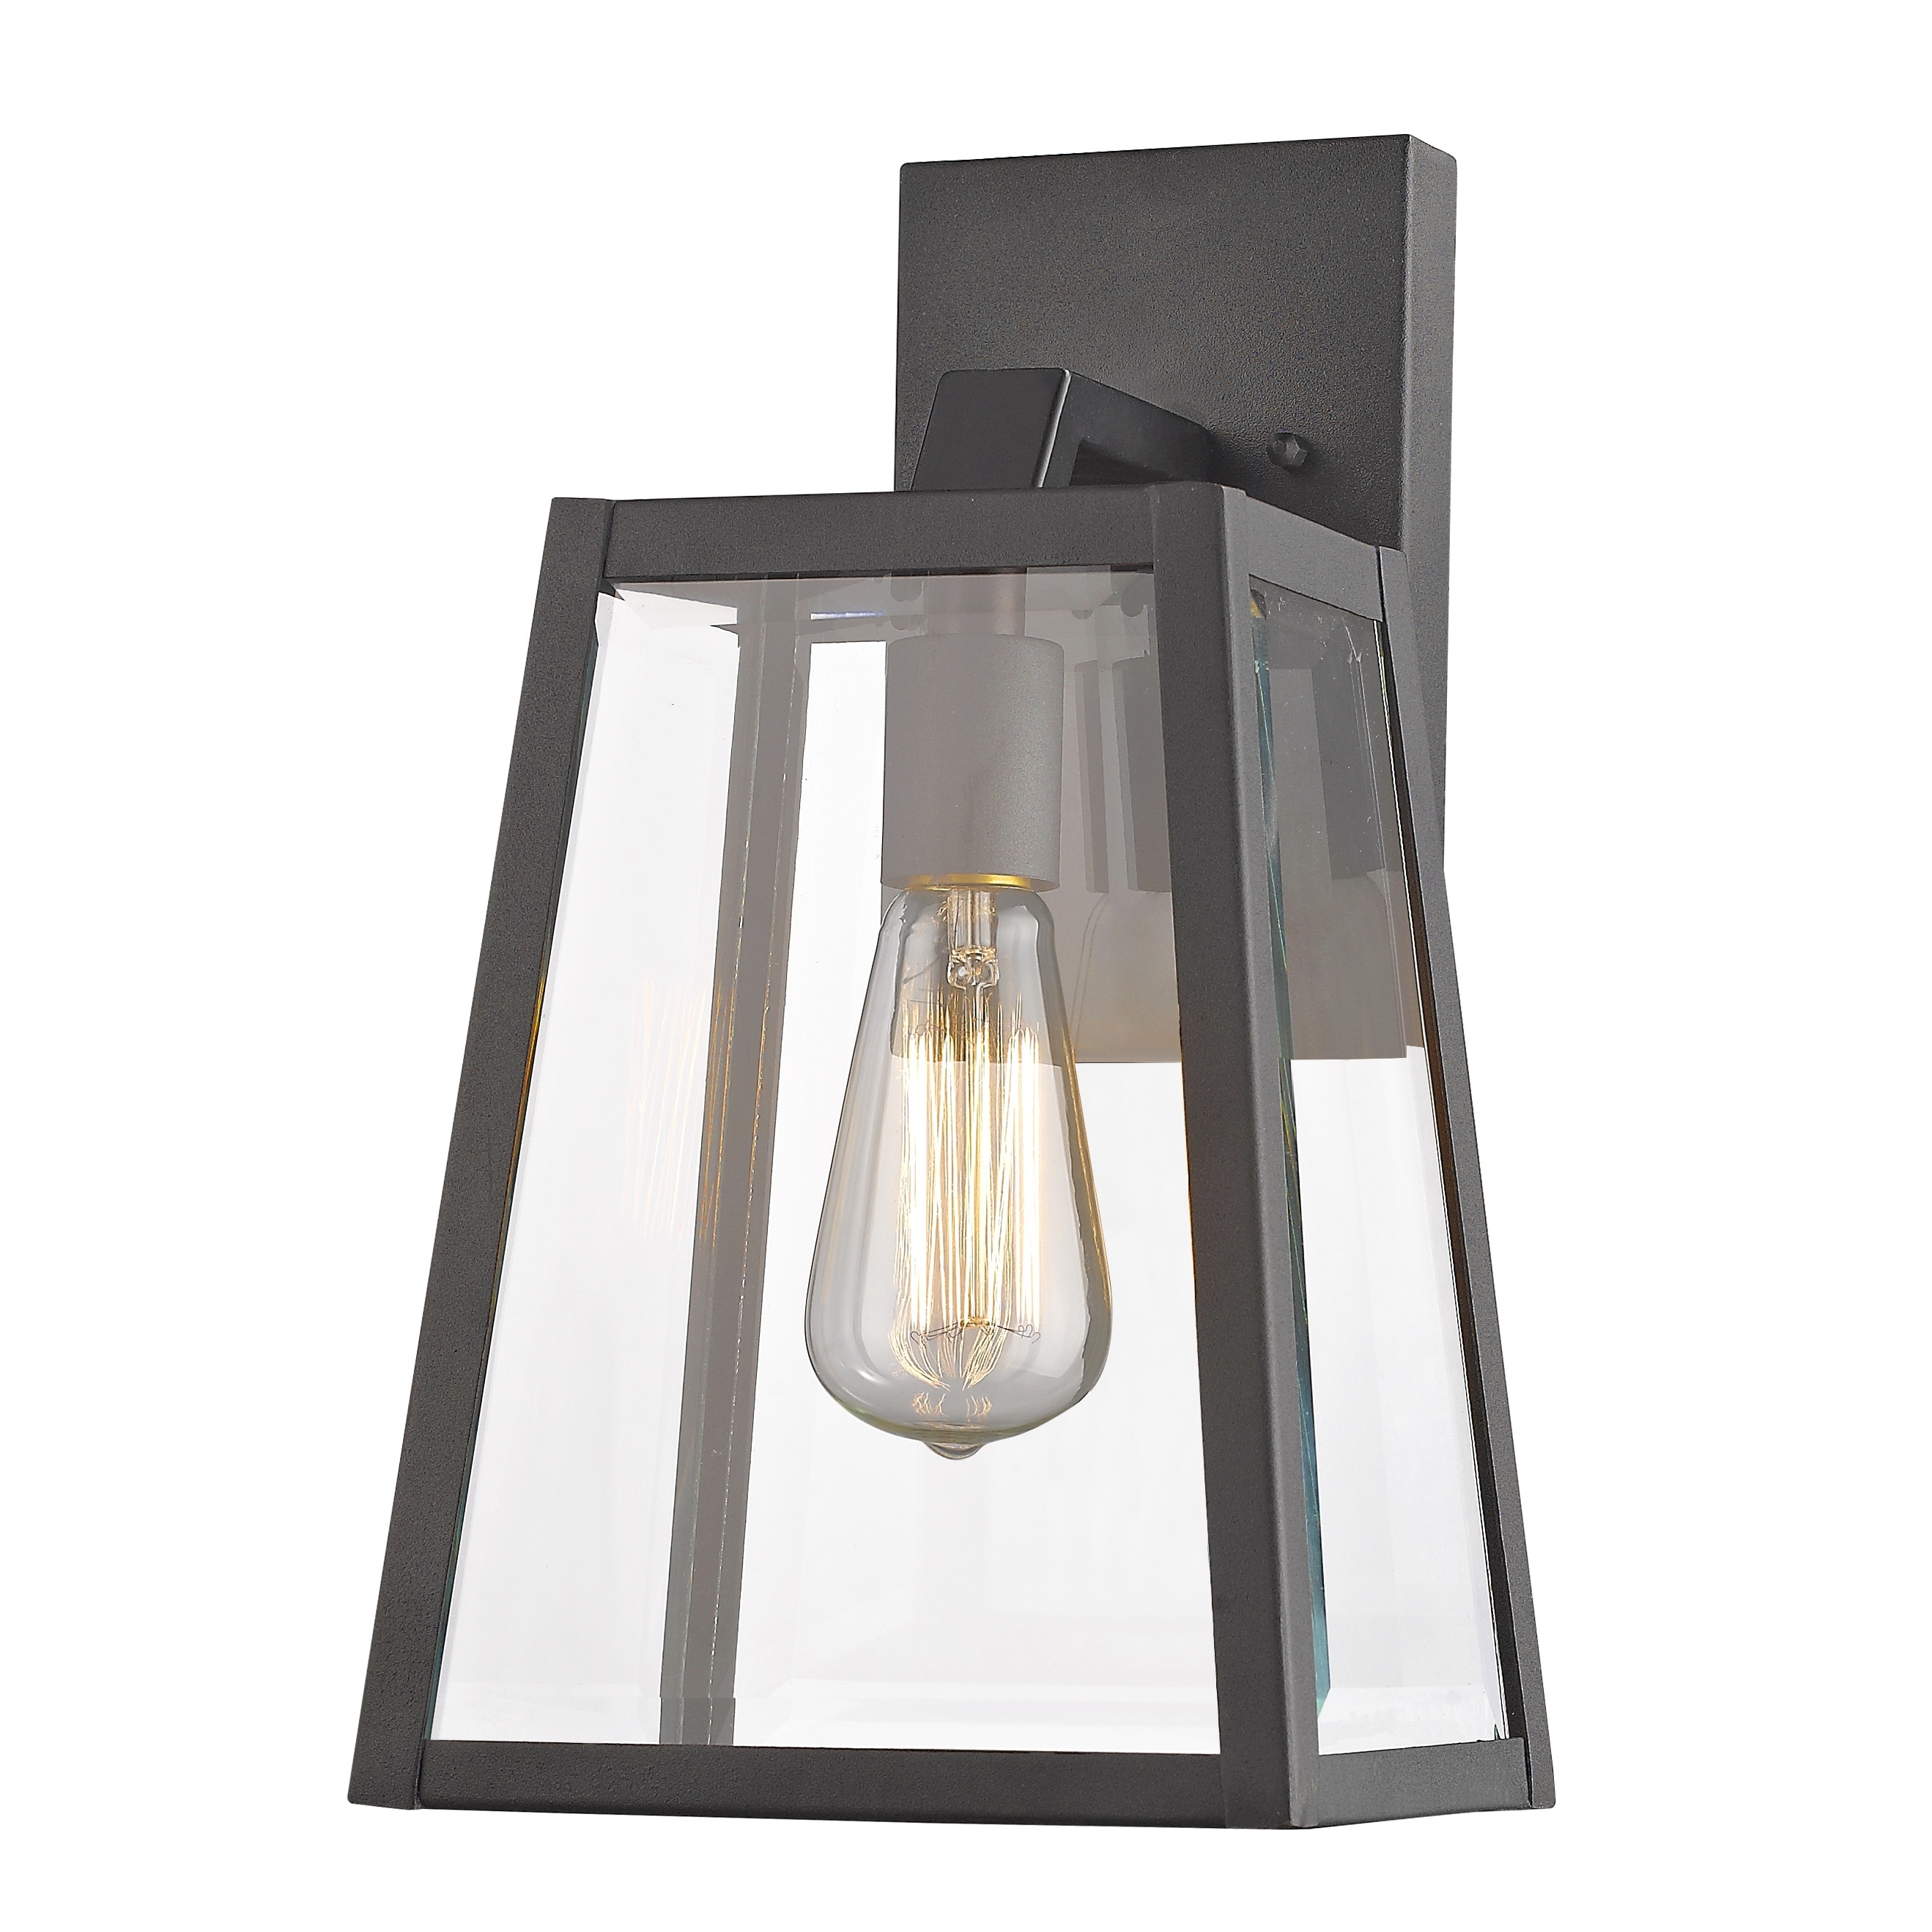 Most Recently Released Outdoor Wall Lighting At Wayfair Inside Outdoor Wall Lighting Wayfair 1 Light Sconce Clipgoo Wall Lighting (View 5 of 20)